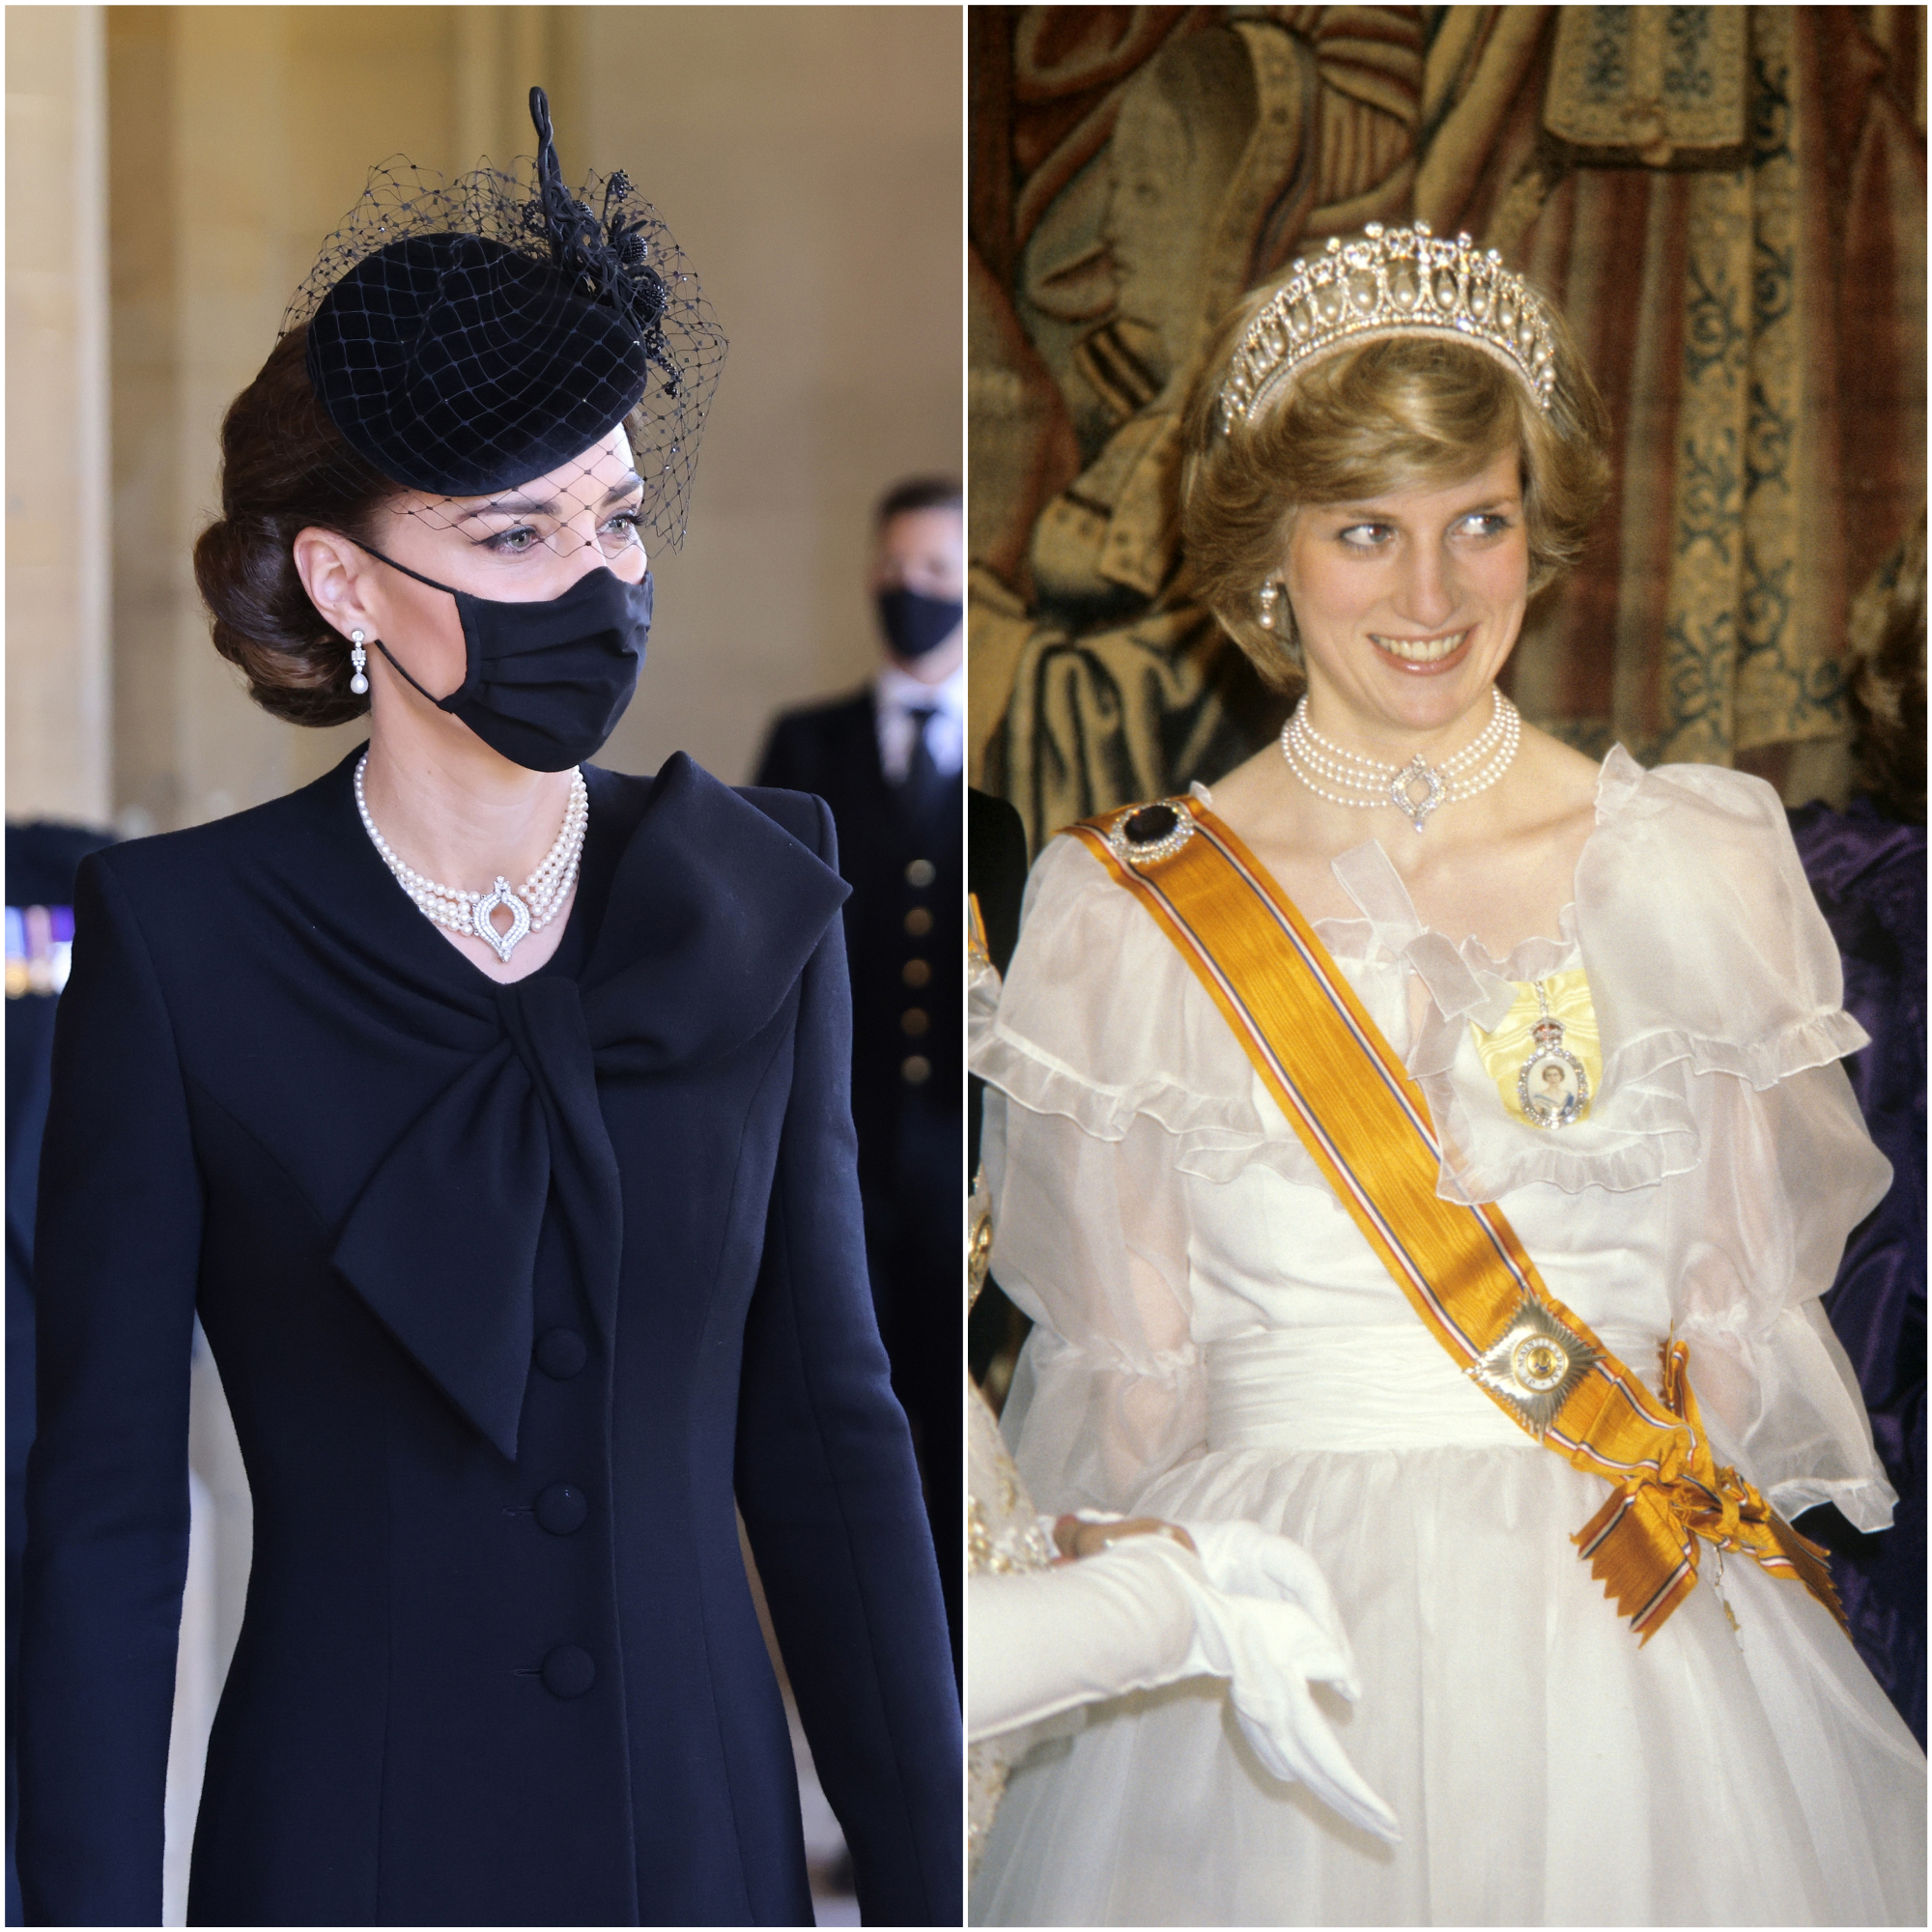 The Duchess of Cambridge and Diana, Princess of Wales